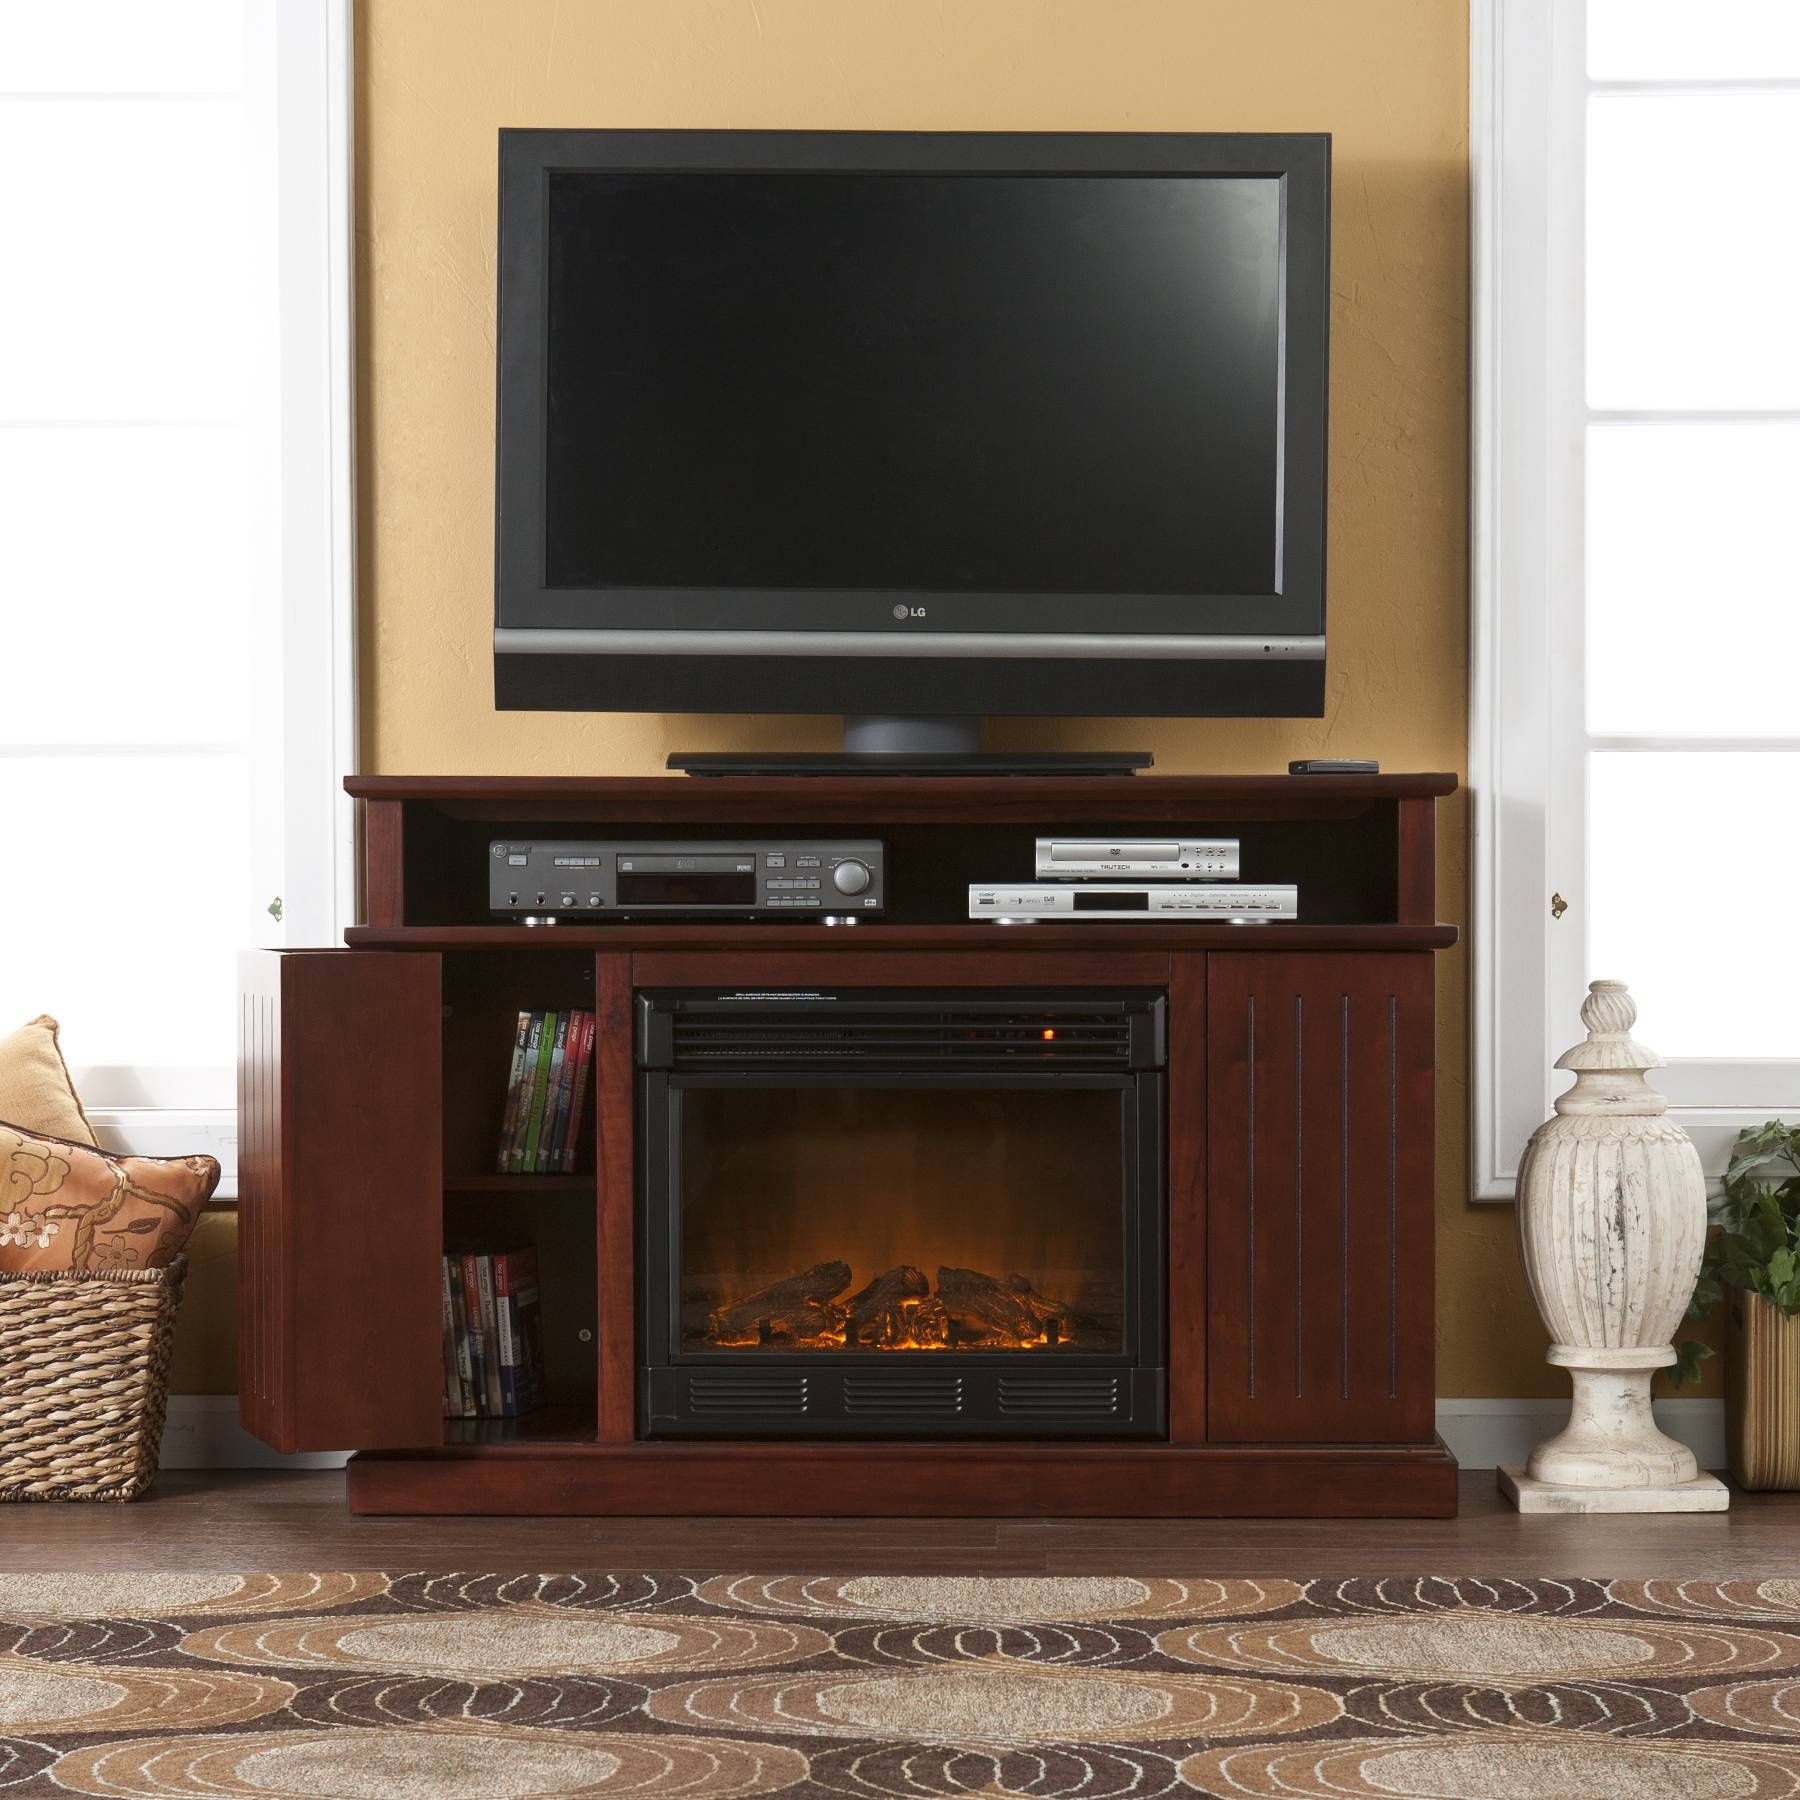 Cherry Wood Tv Stand With Electric Fireplace And Cd Storage Within Cherry Wood Tv Stands (View 12 of 15)